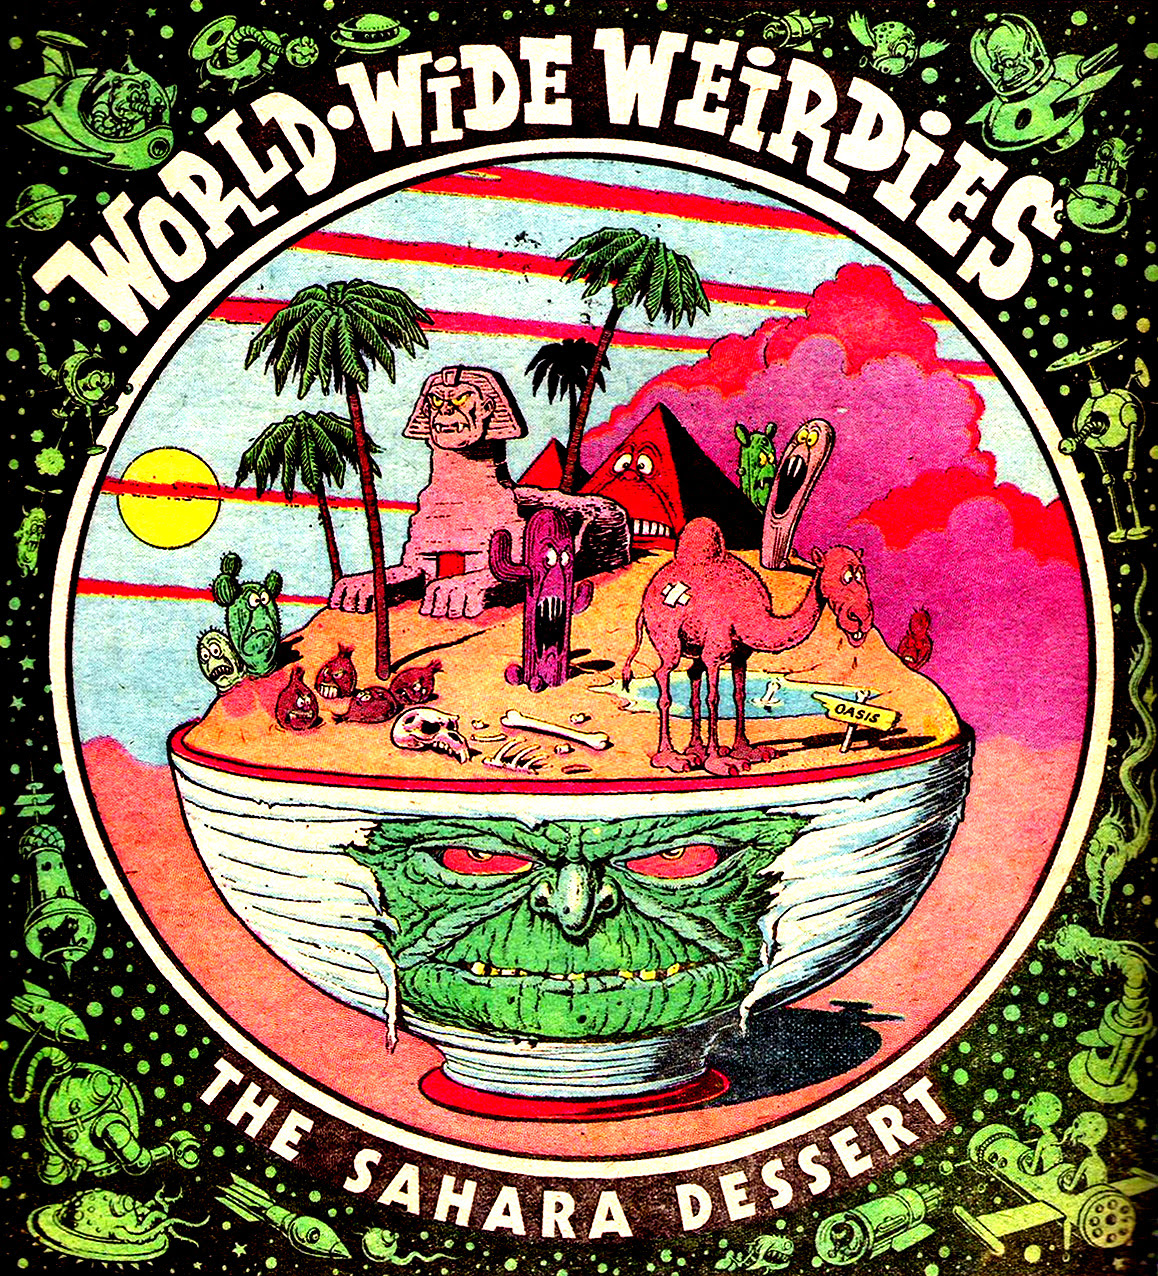 Ken Reid - World Wide Weirdies 23